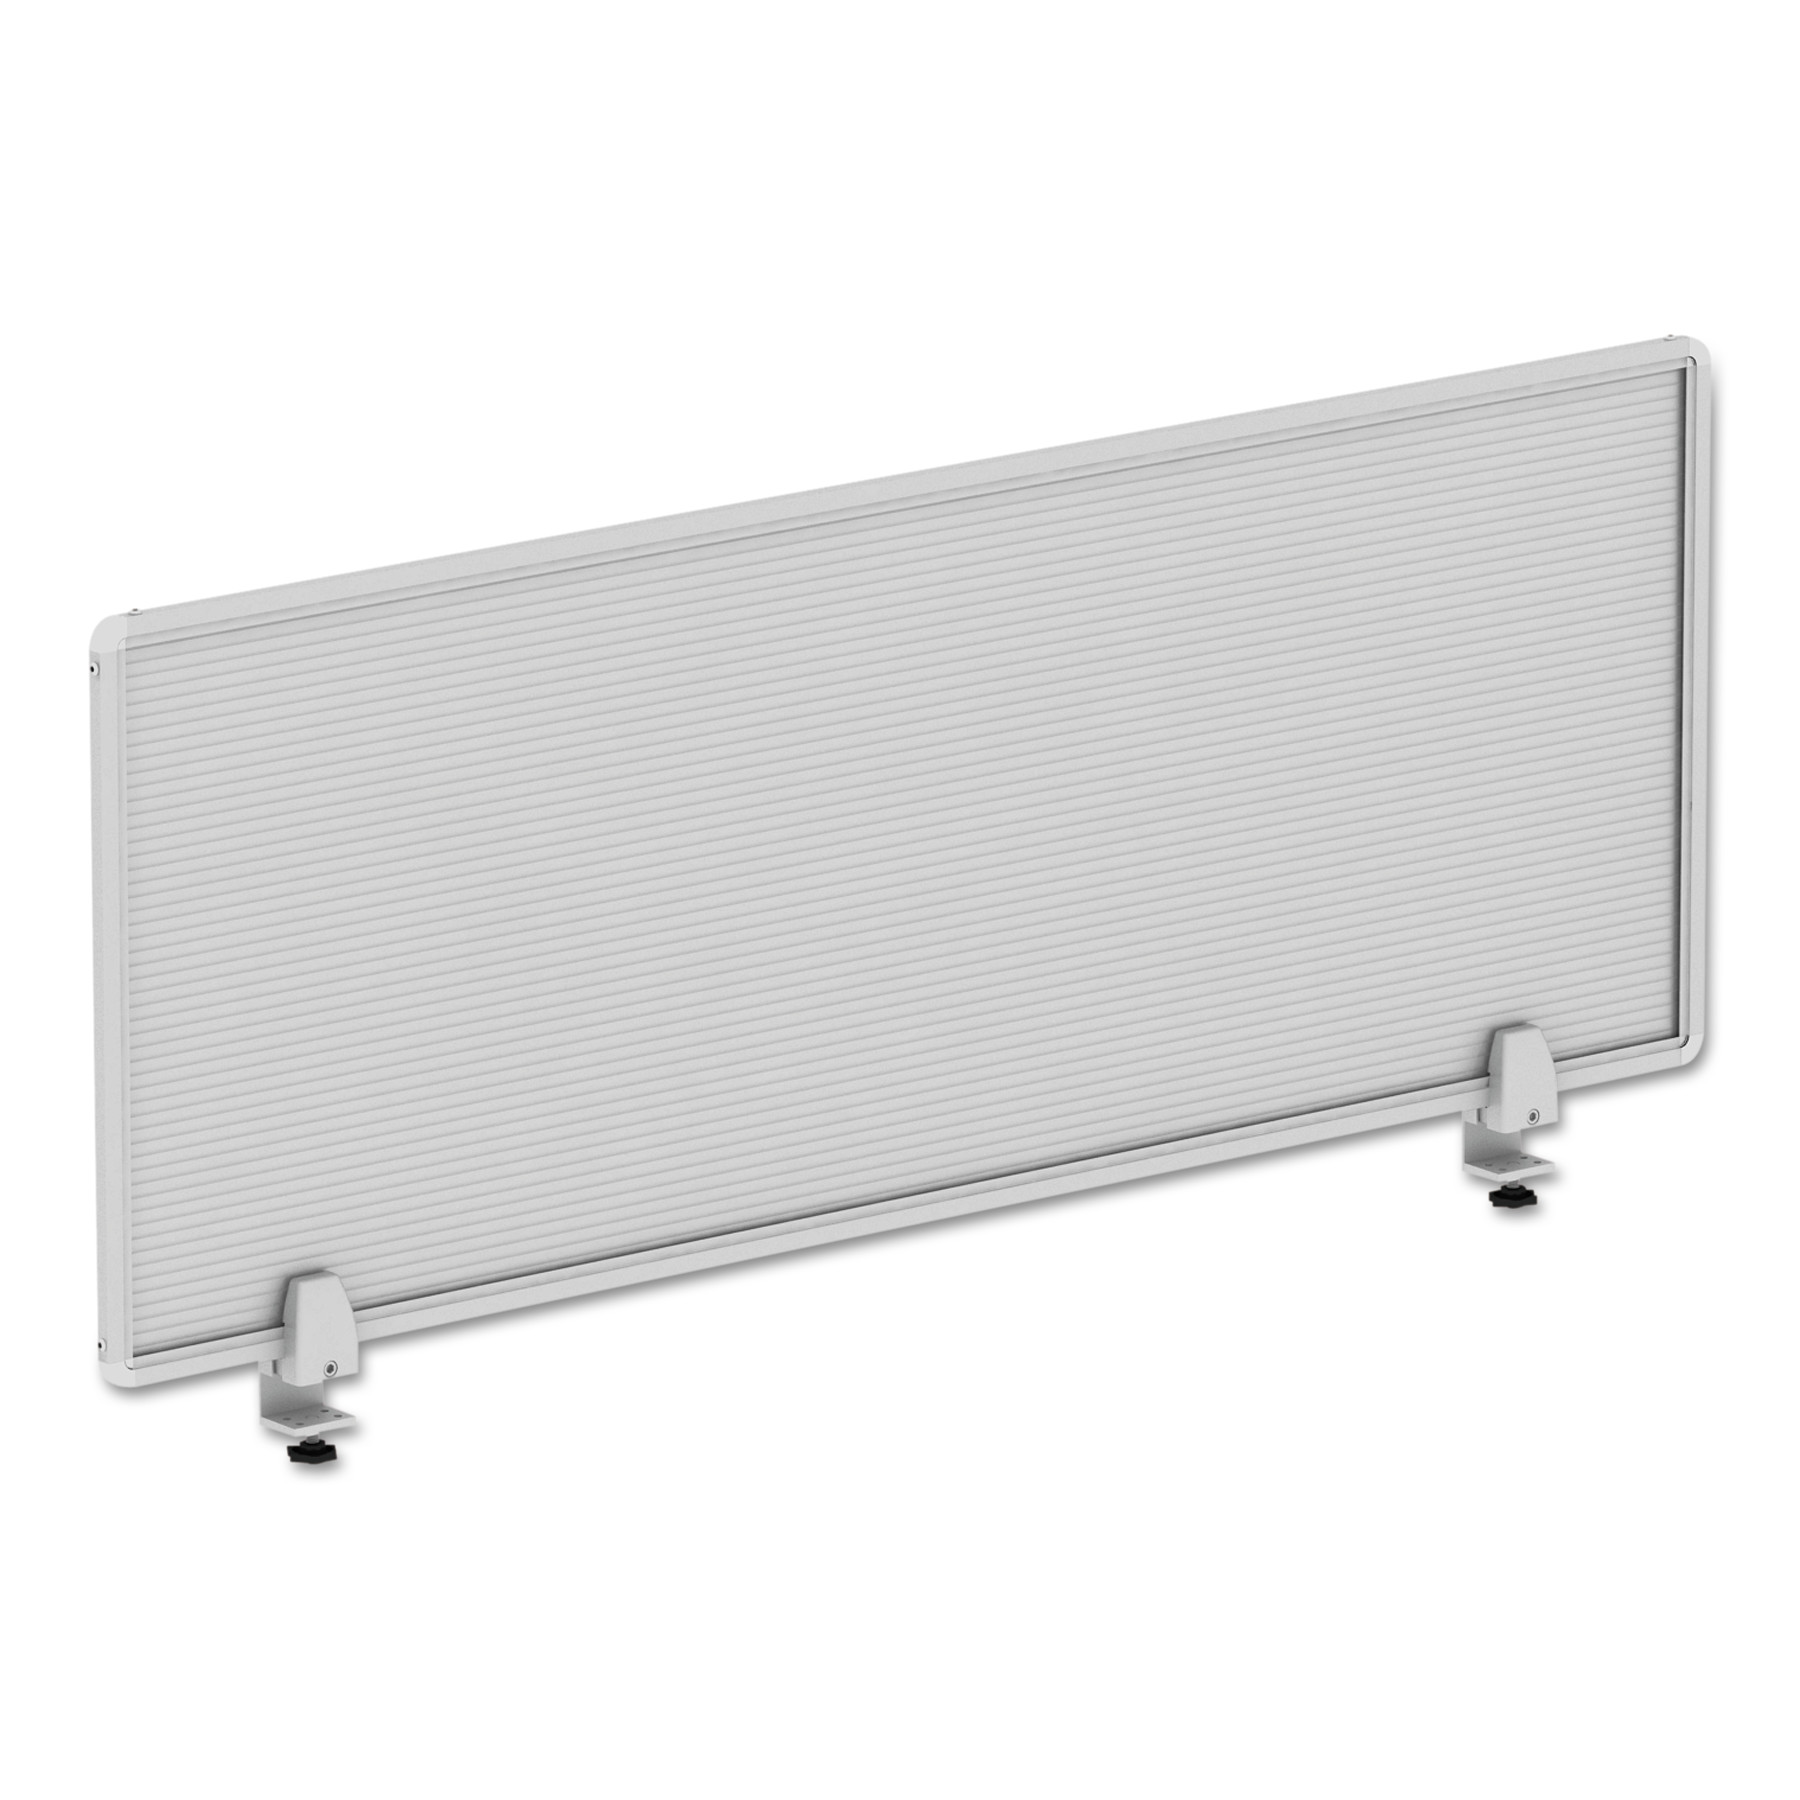 Alera Polycarbonate Privacy Panel, 47w x 18h, Silver by ALERA